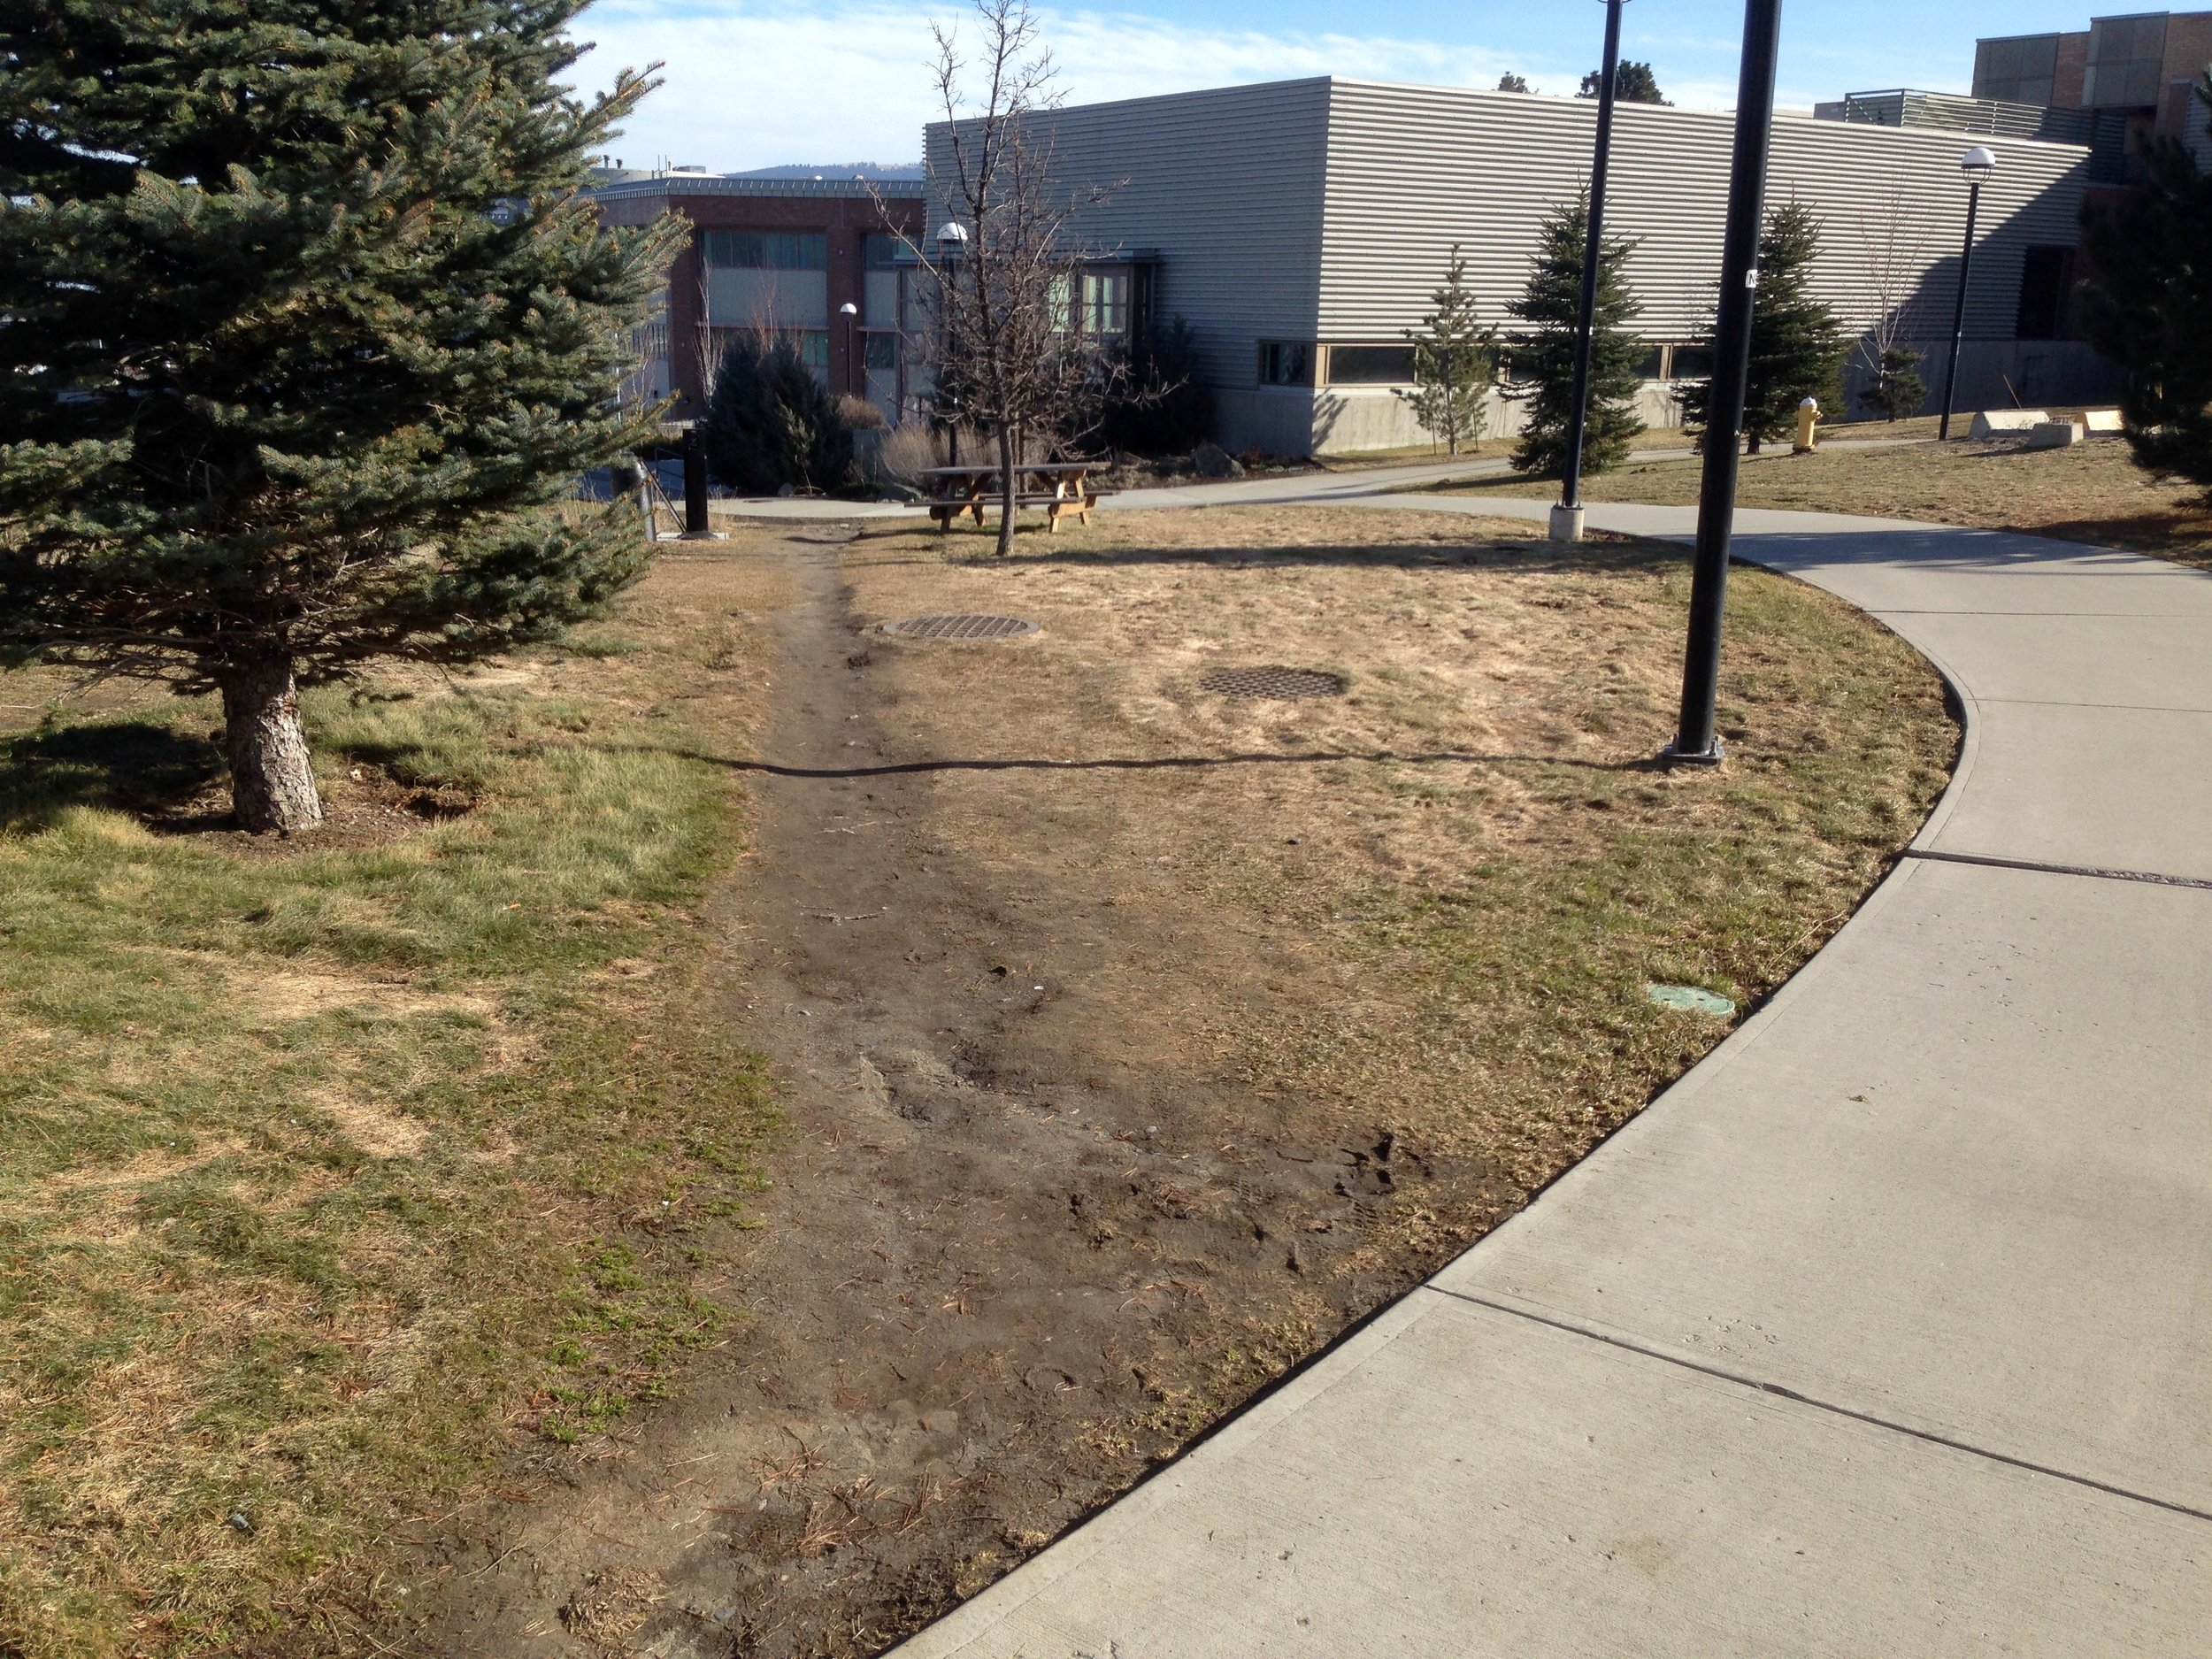 An example of damage which can occur to landscaping without appropriate planning for foot traffic.